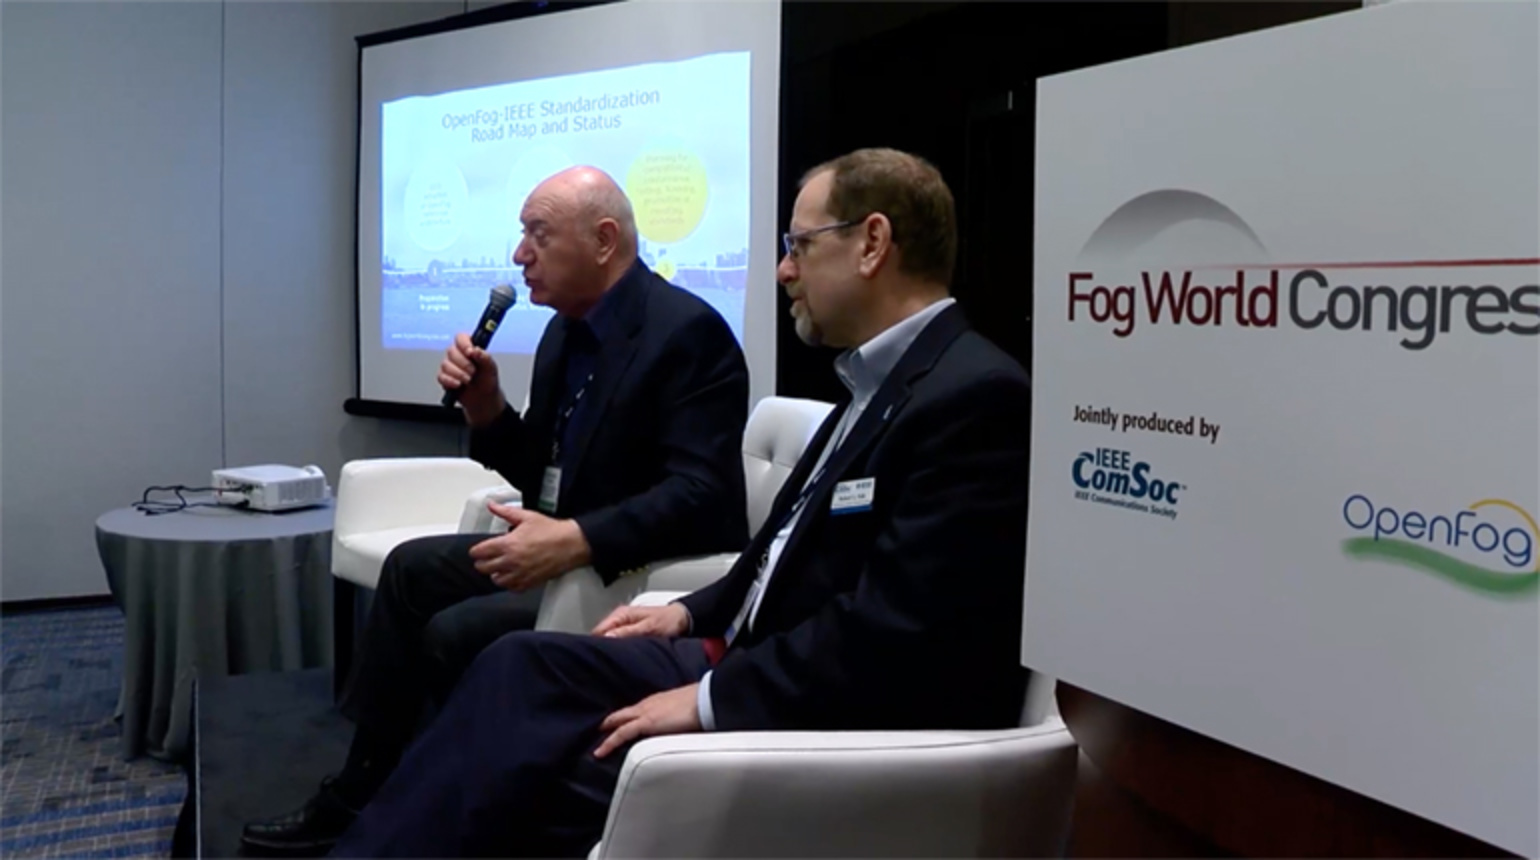 Fog Computing on the Horizon - Fog World Congress